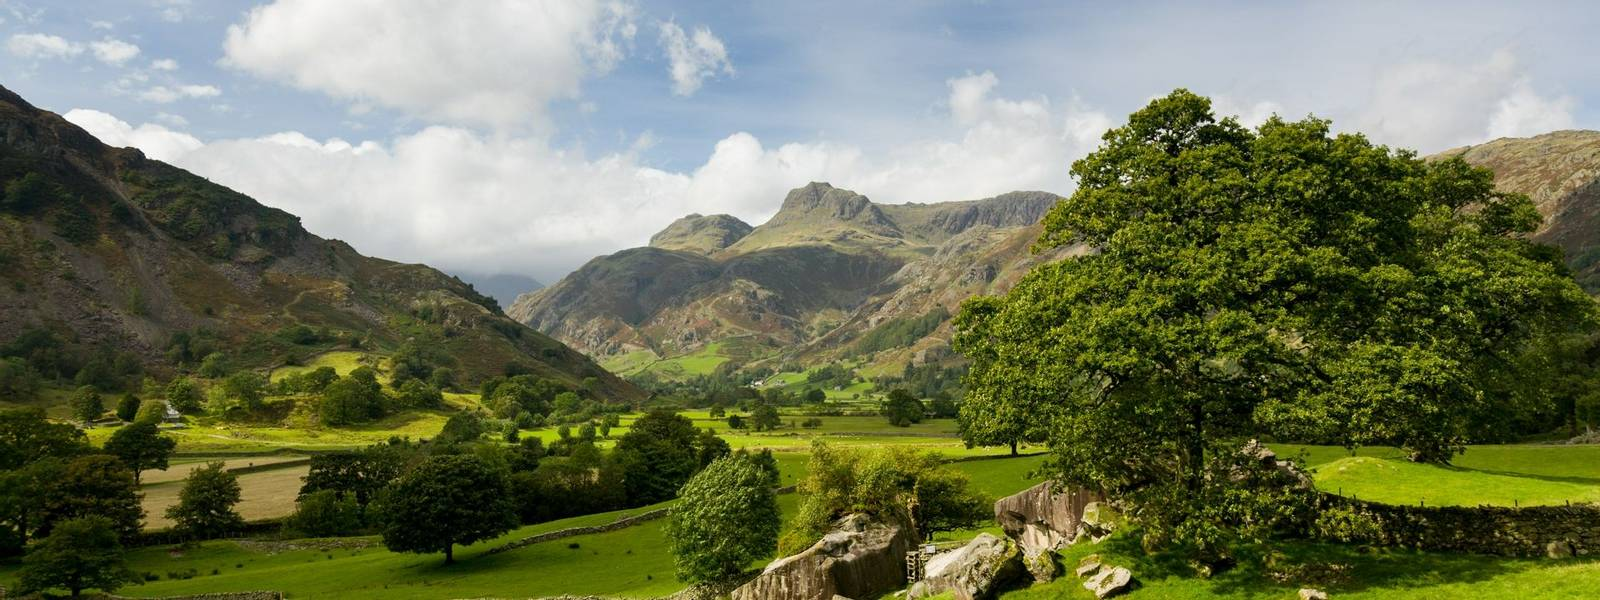 Langdale Pikes in Lake District